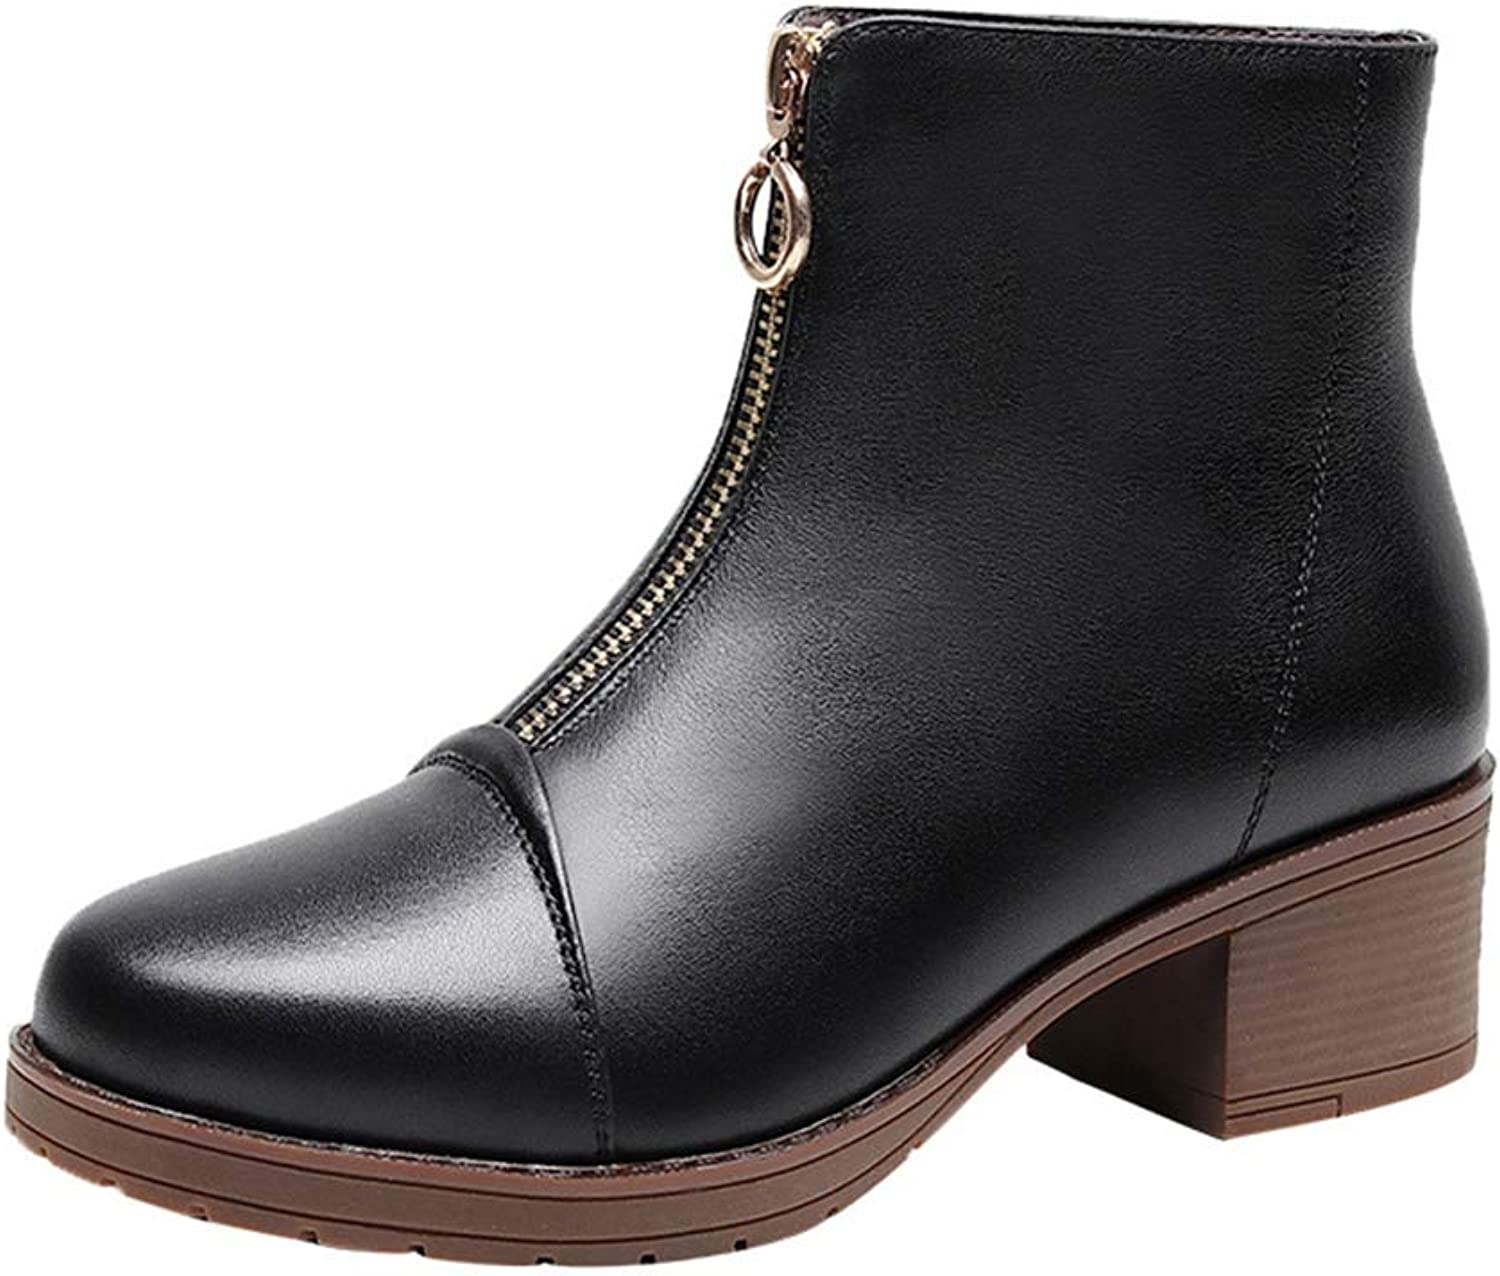 Womens Leather Boots Autumn Winter Heel shoes Funky Dress Boots Heel Ankle Boots Front Zipper Martin Boots Black (color   A, Size   42)